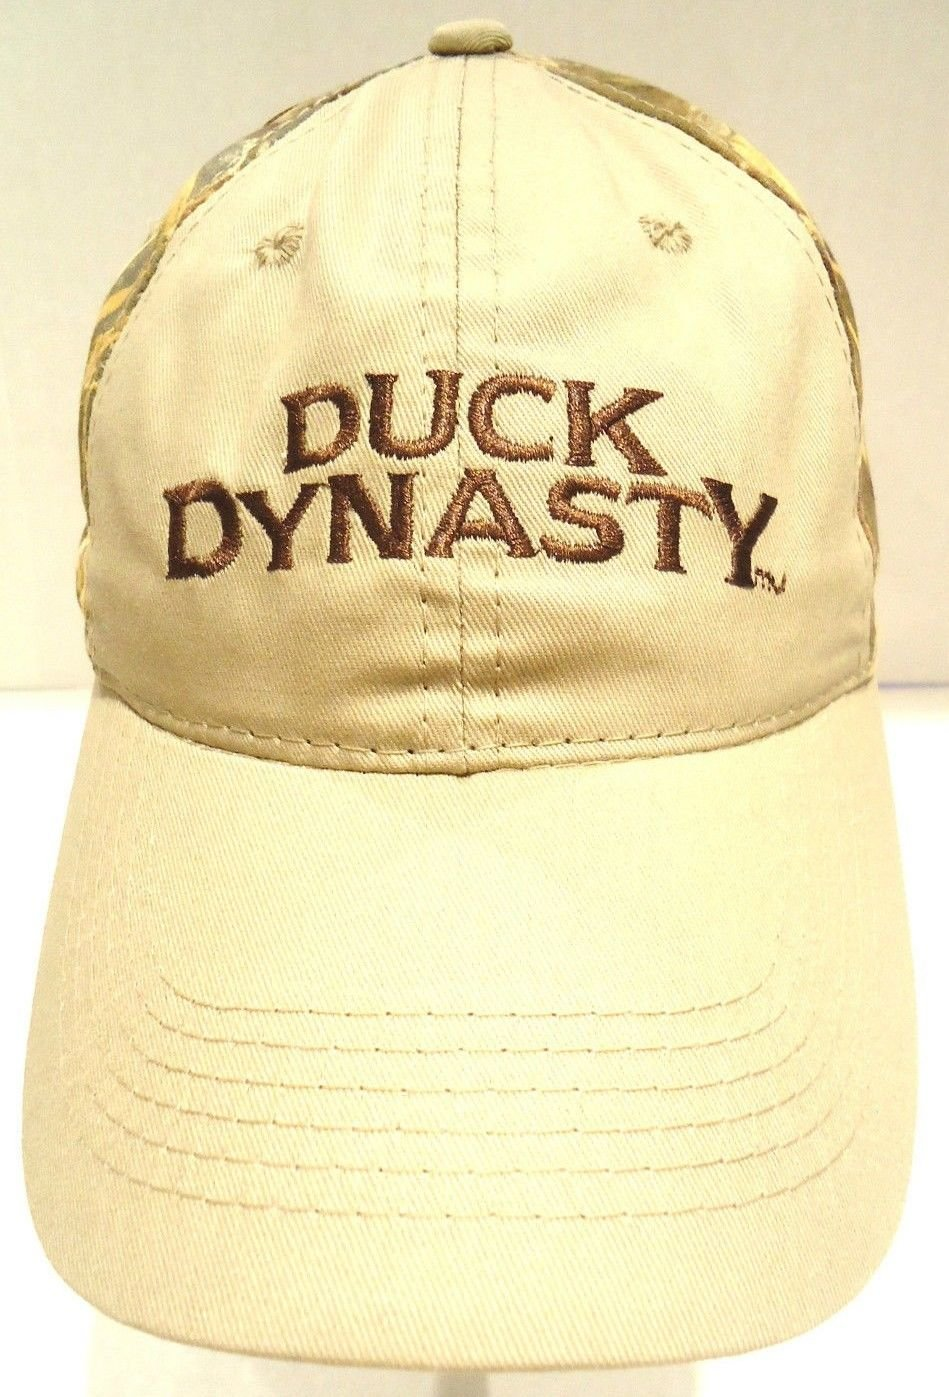 DUCK DYNASTY - REAL TREE - BEIGE - CAMOUFLAGE - BASEBALL - CAP - HAT - BRAND NEW